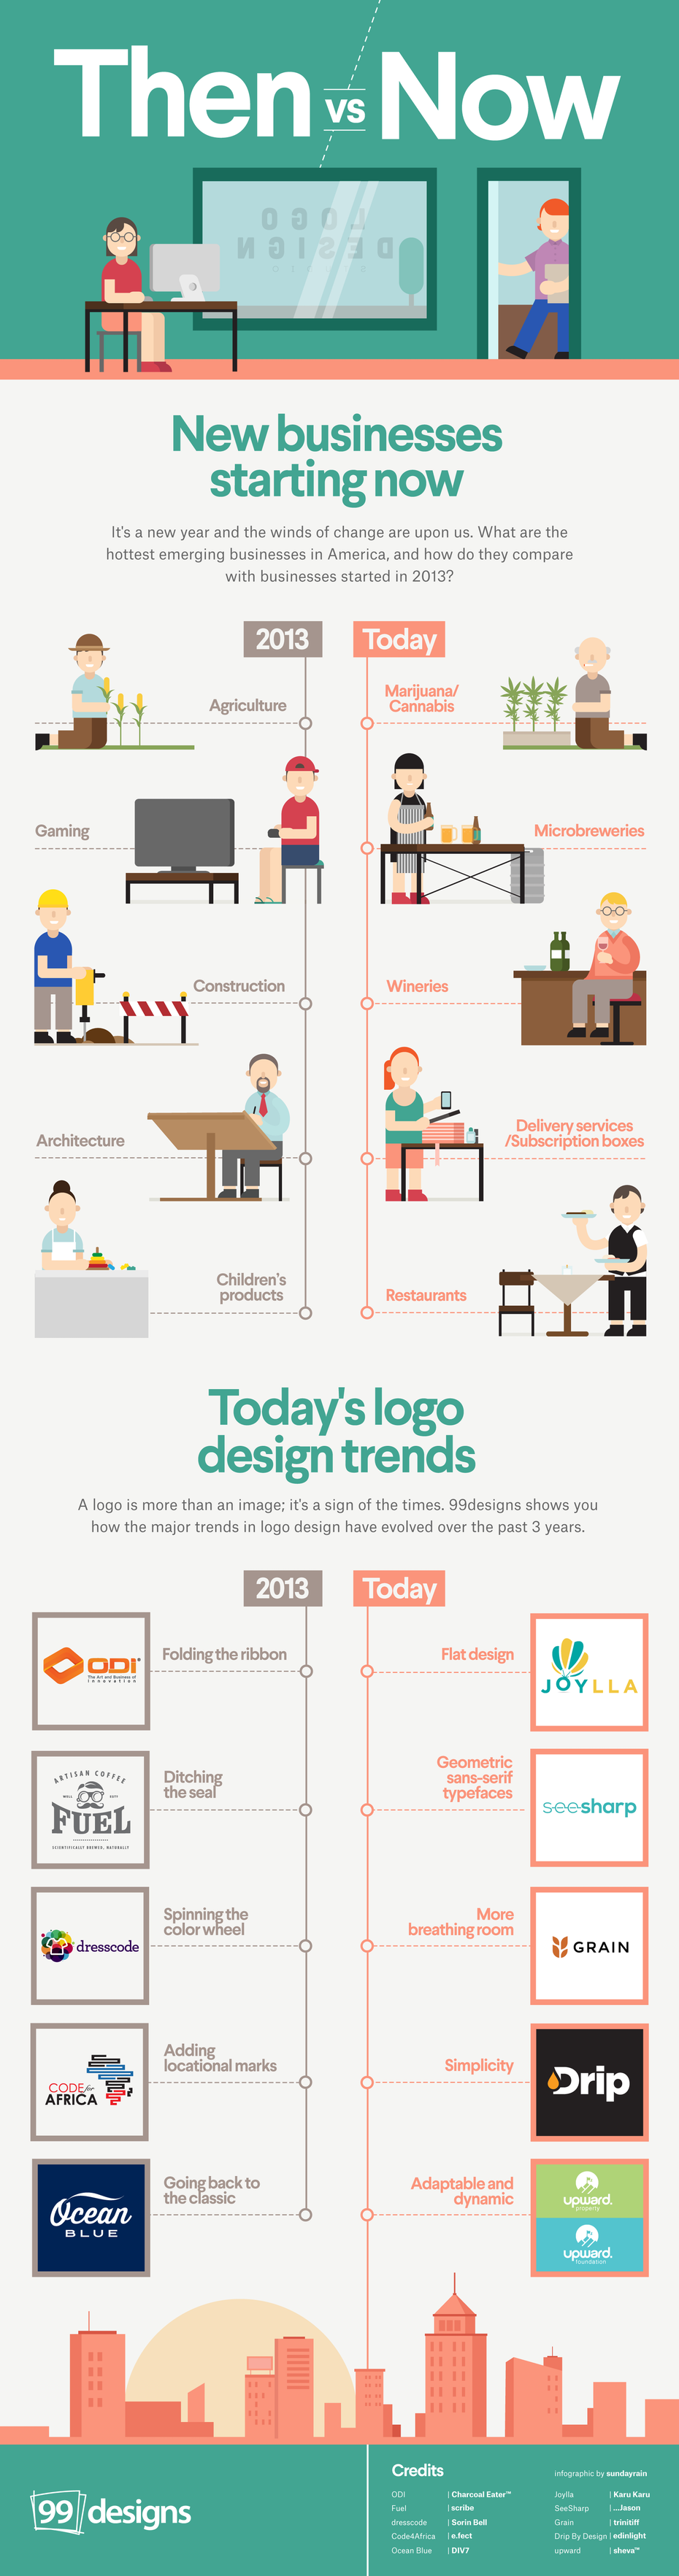 2016 business trends infographic